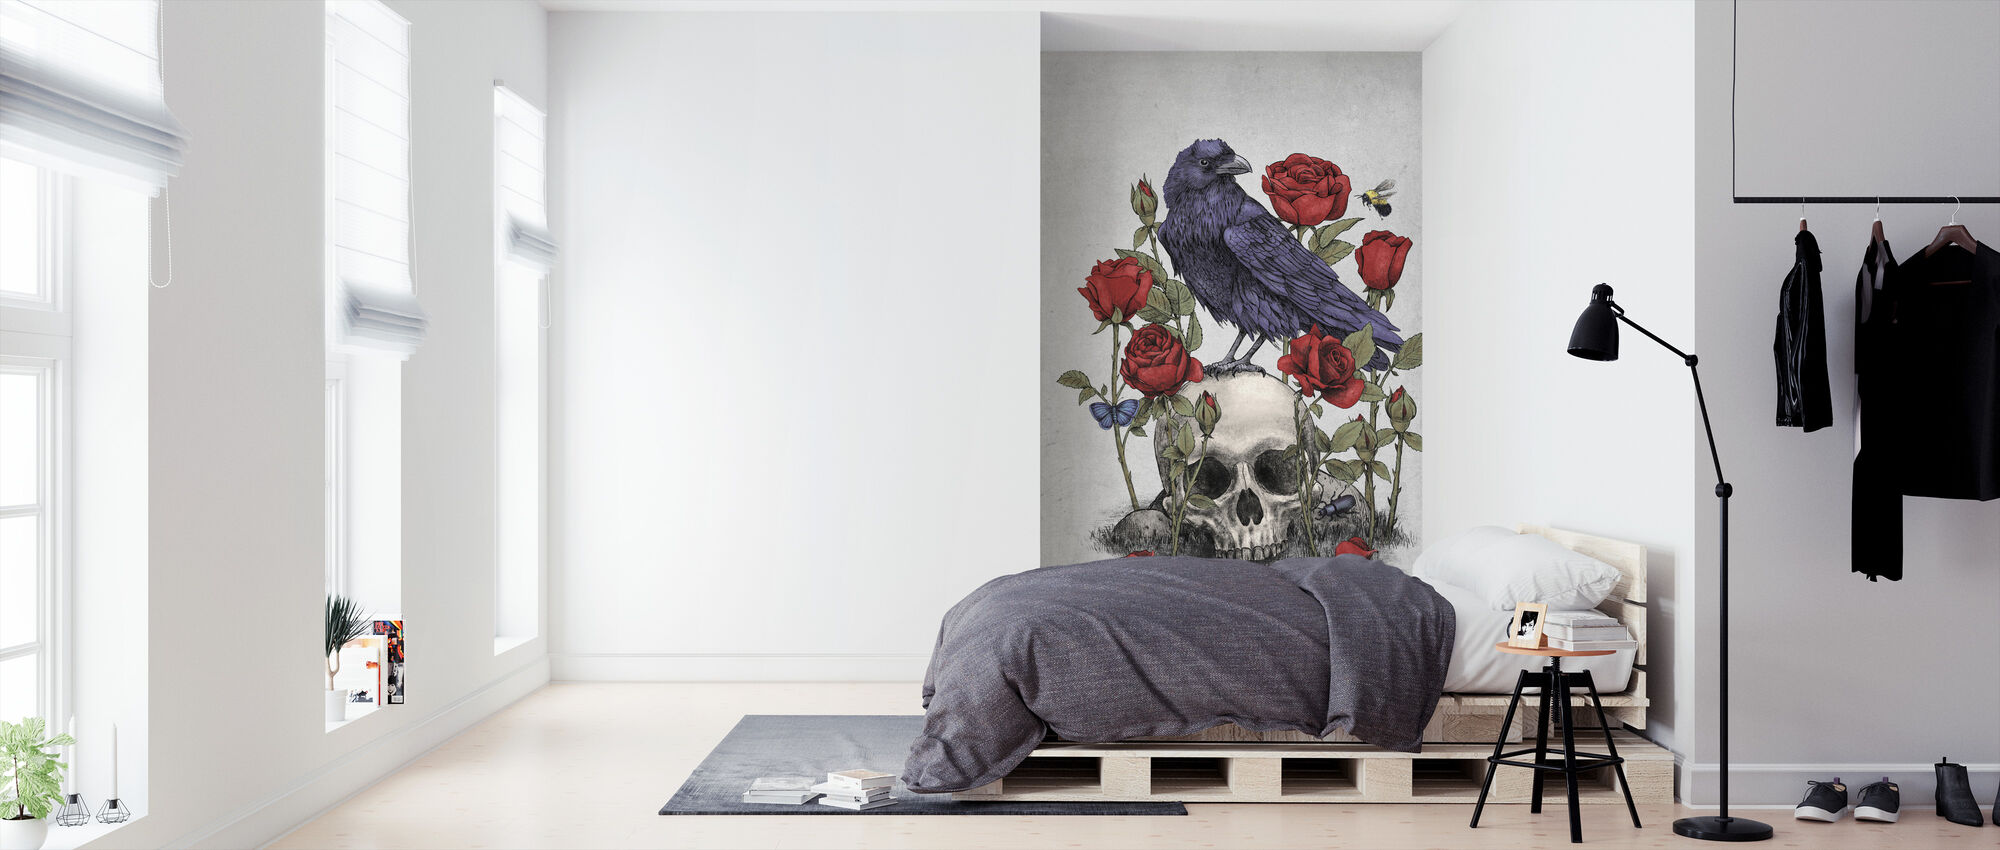 Memento Mori - Wallpaper - Bedroom